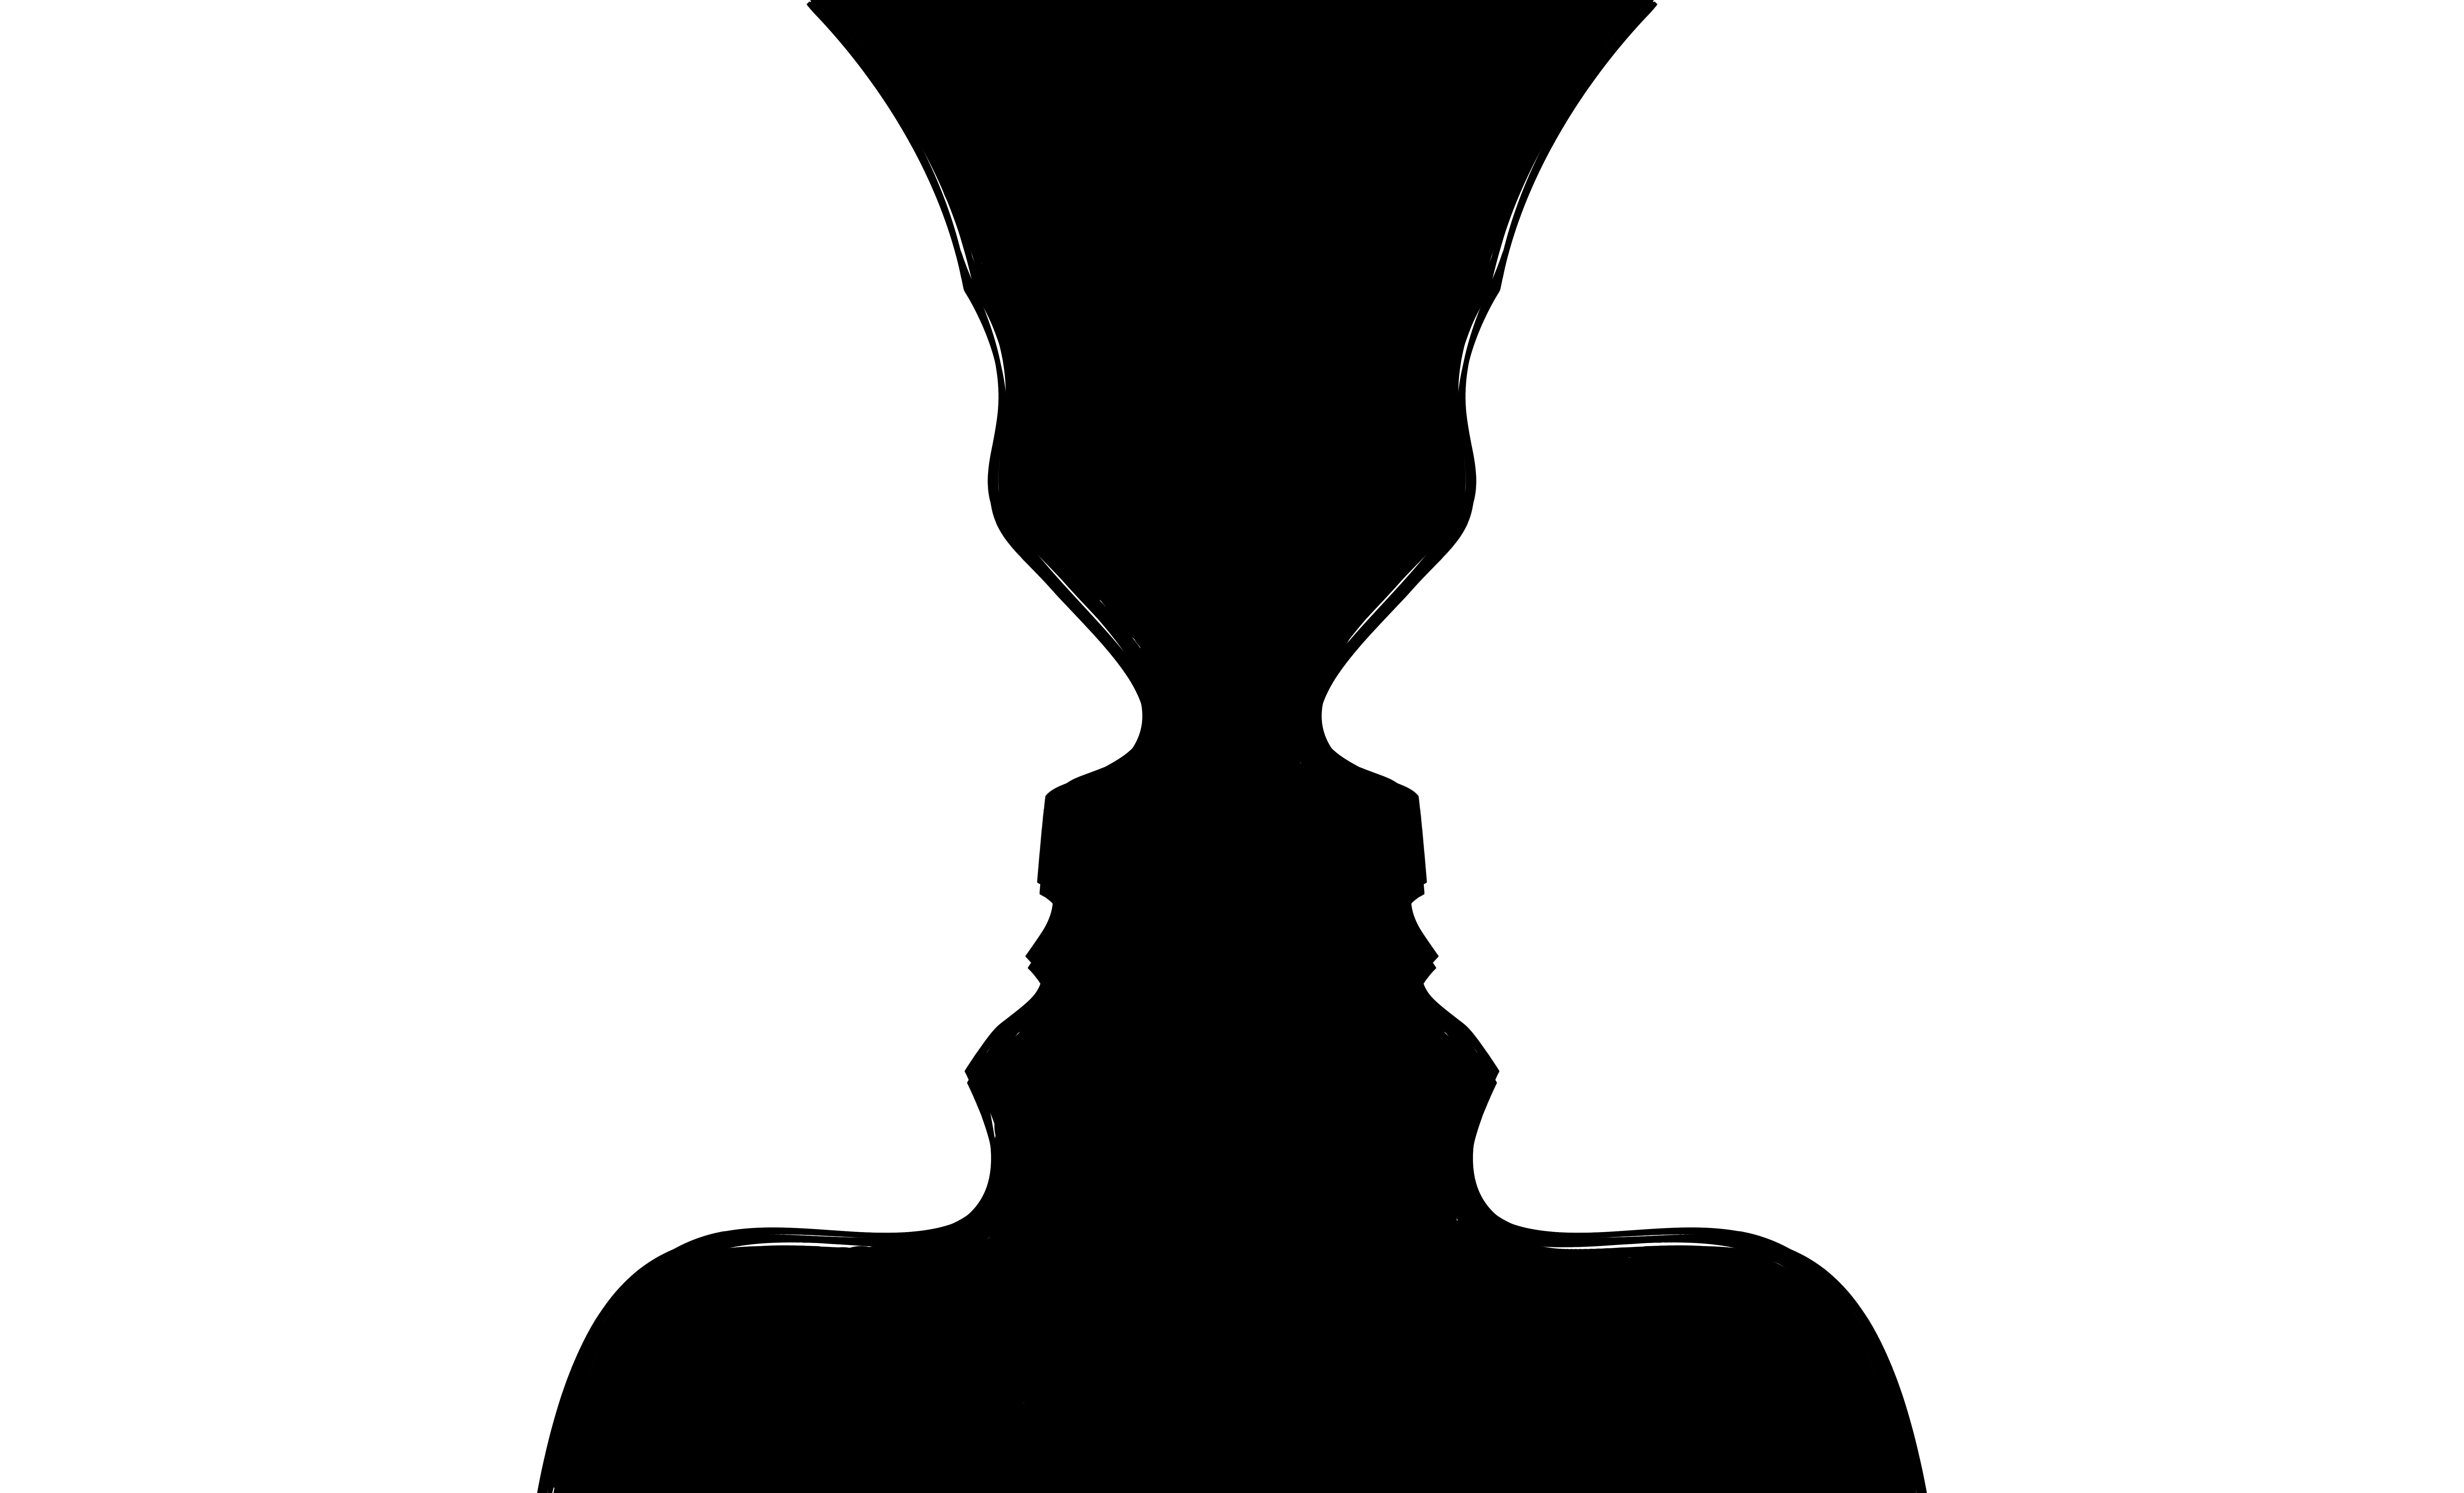 8799x5333 Free Images Hand, Silhouette, Person, Vase, Thought, Human Body